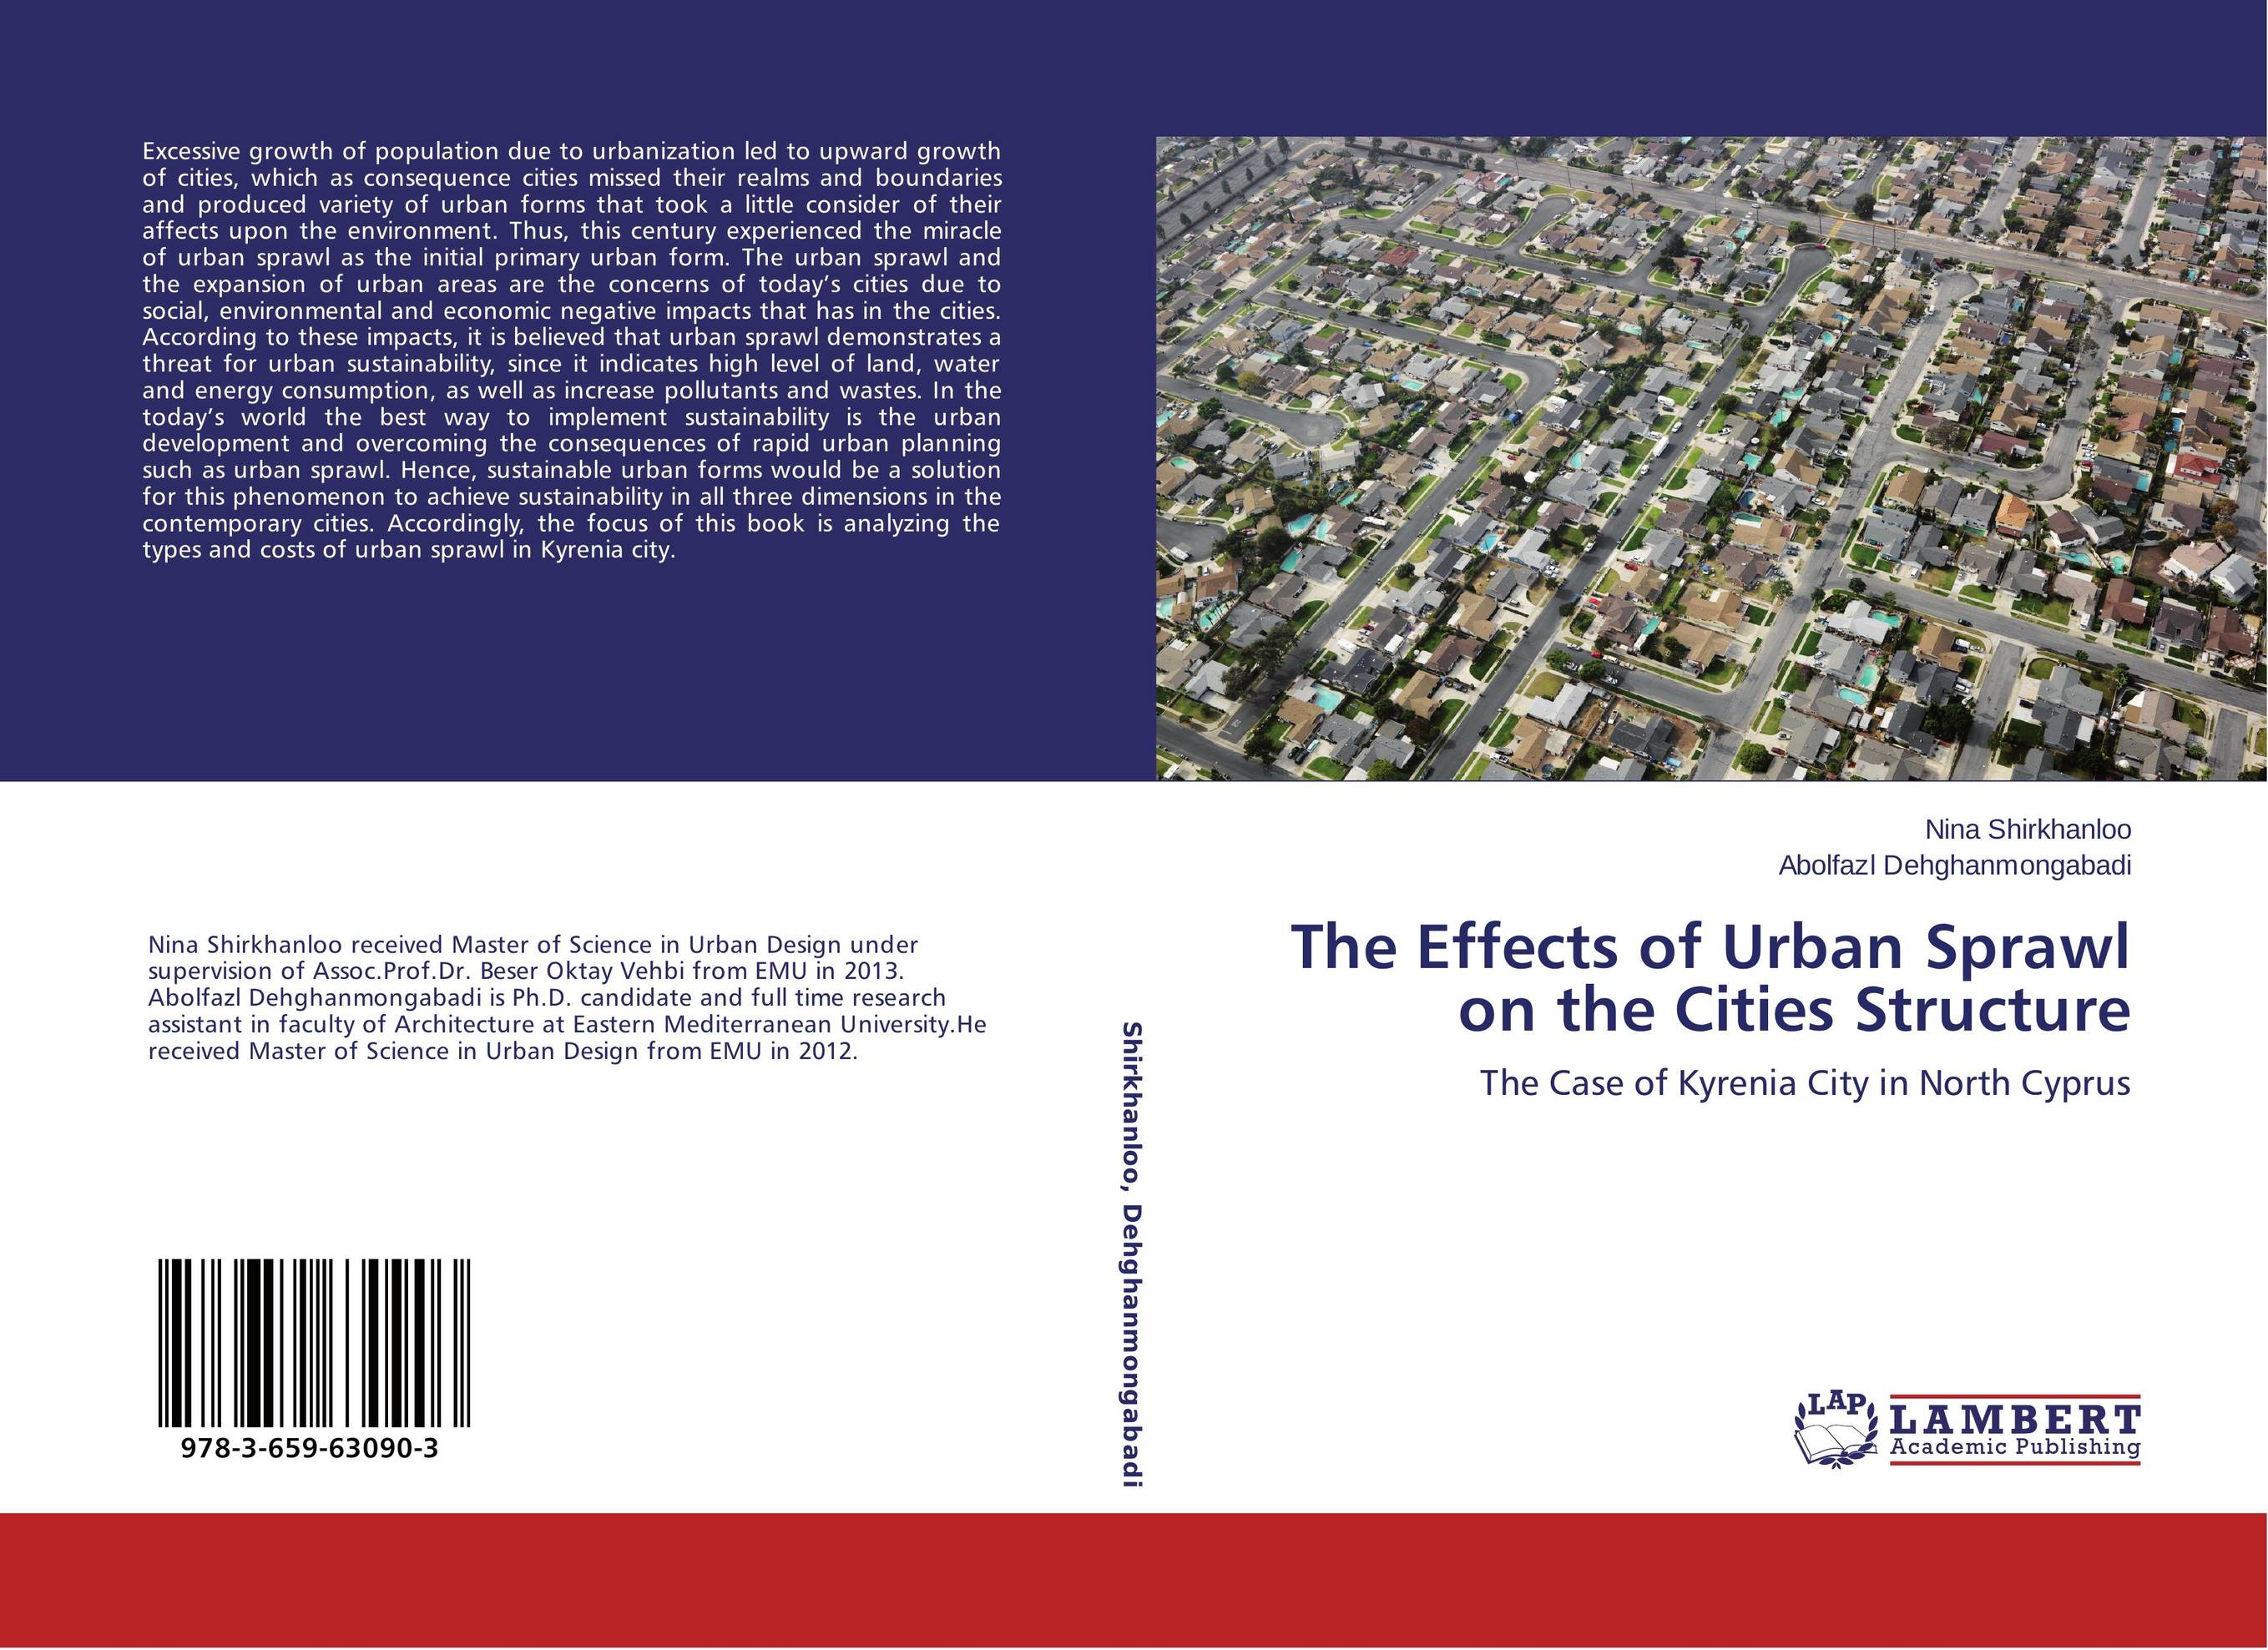 the effects of urbanisation The effects of urbanisation can be both positive and negative, whether it is on the peoples, the society or the environment the practice of urbanisation has brought with it, many arguments as to whether it is a positive or negative phenomena.